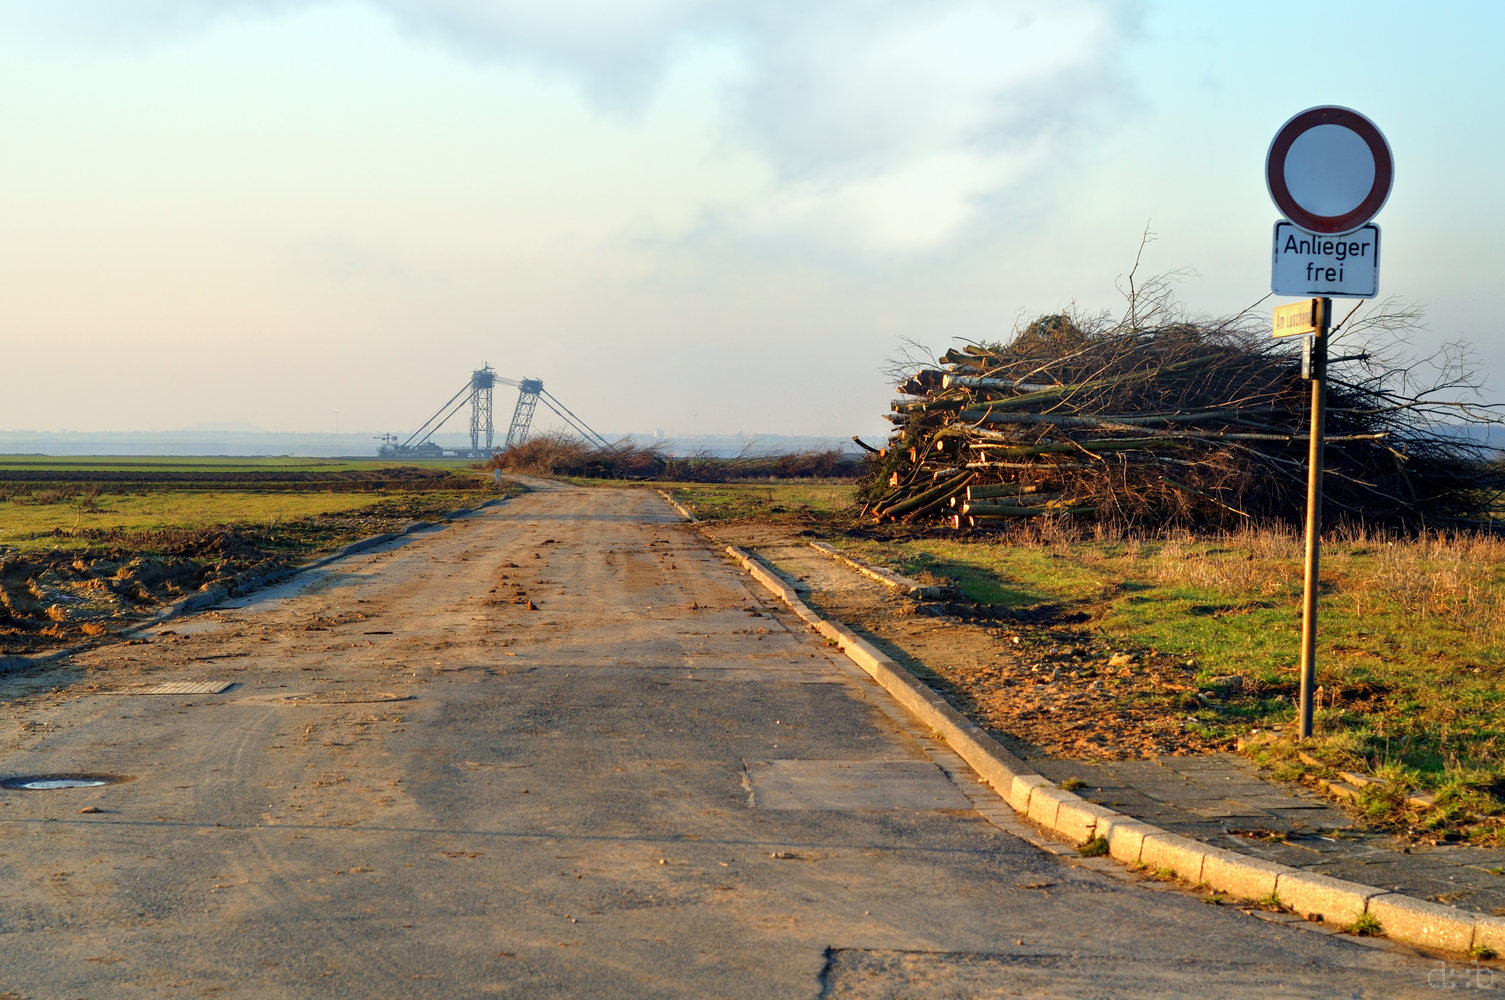 A road, formerly guarded with houses, now leads straight into the lignite mine